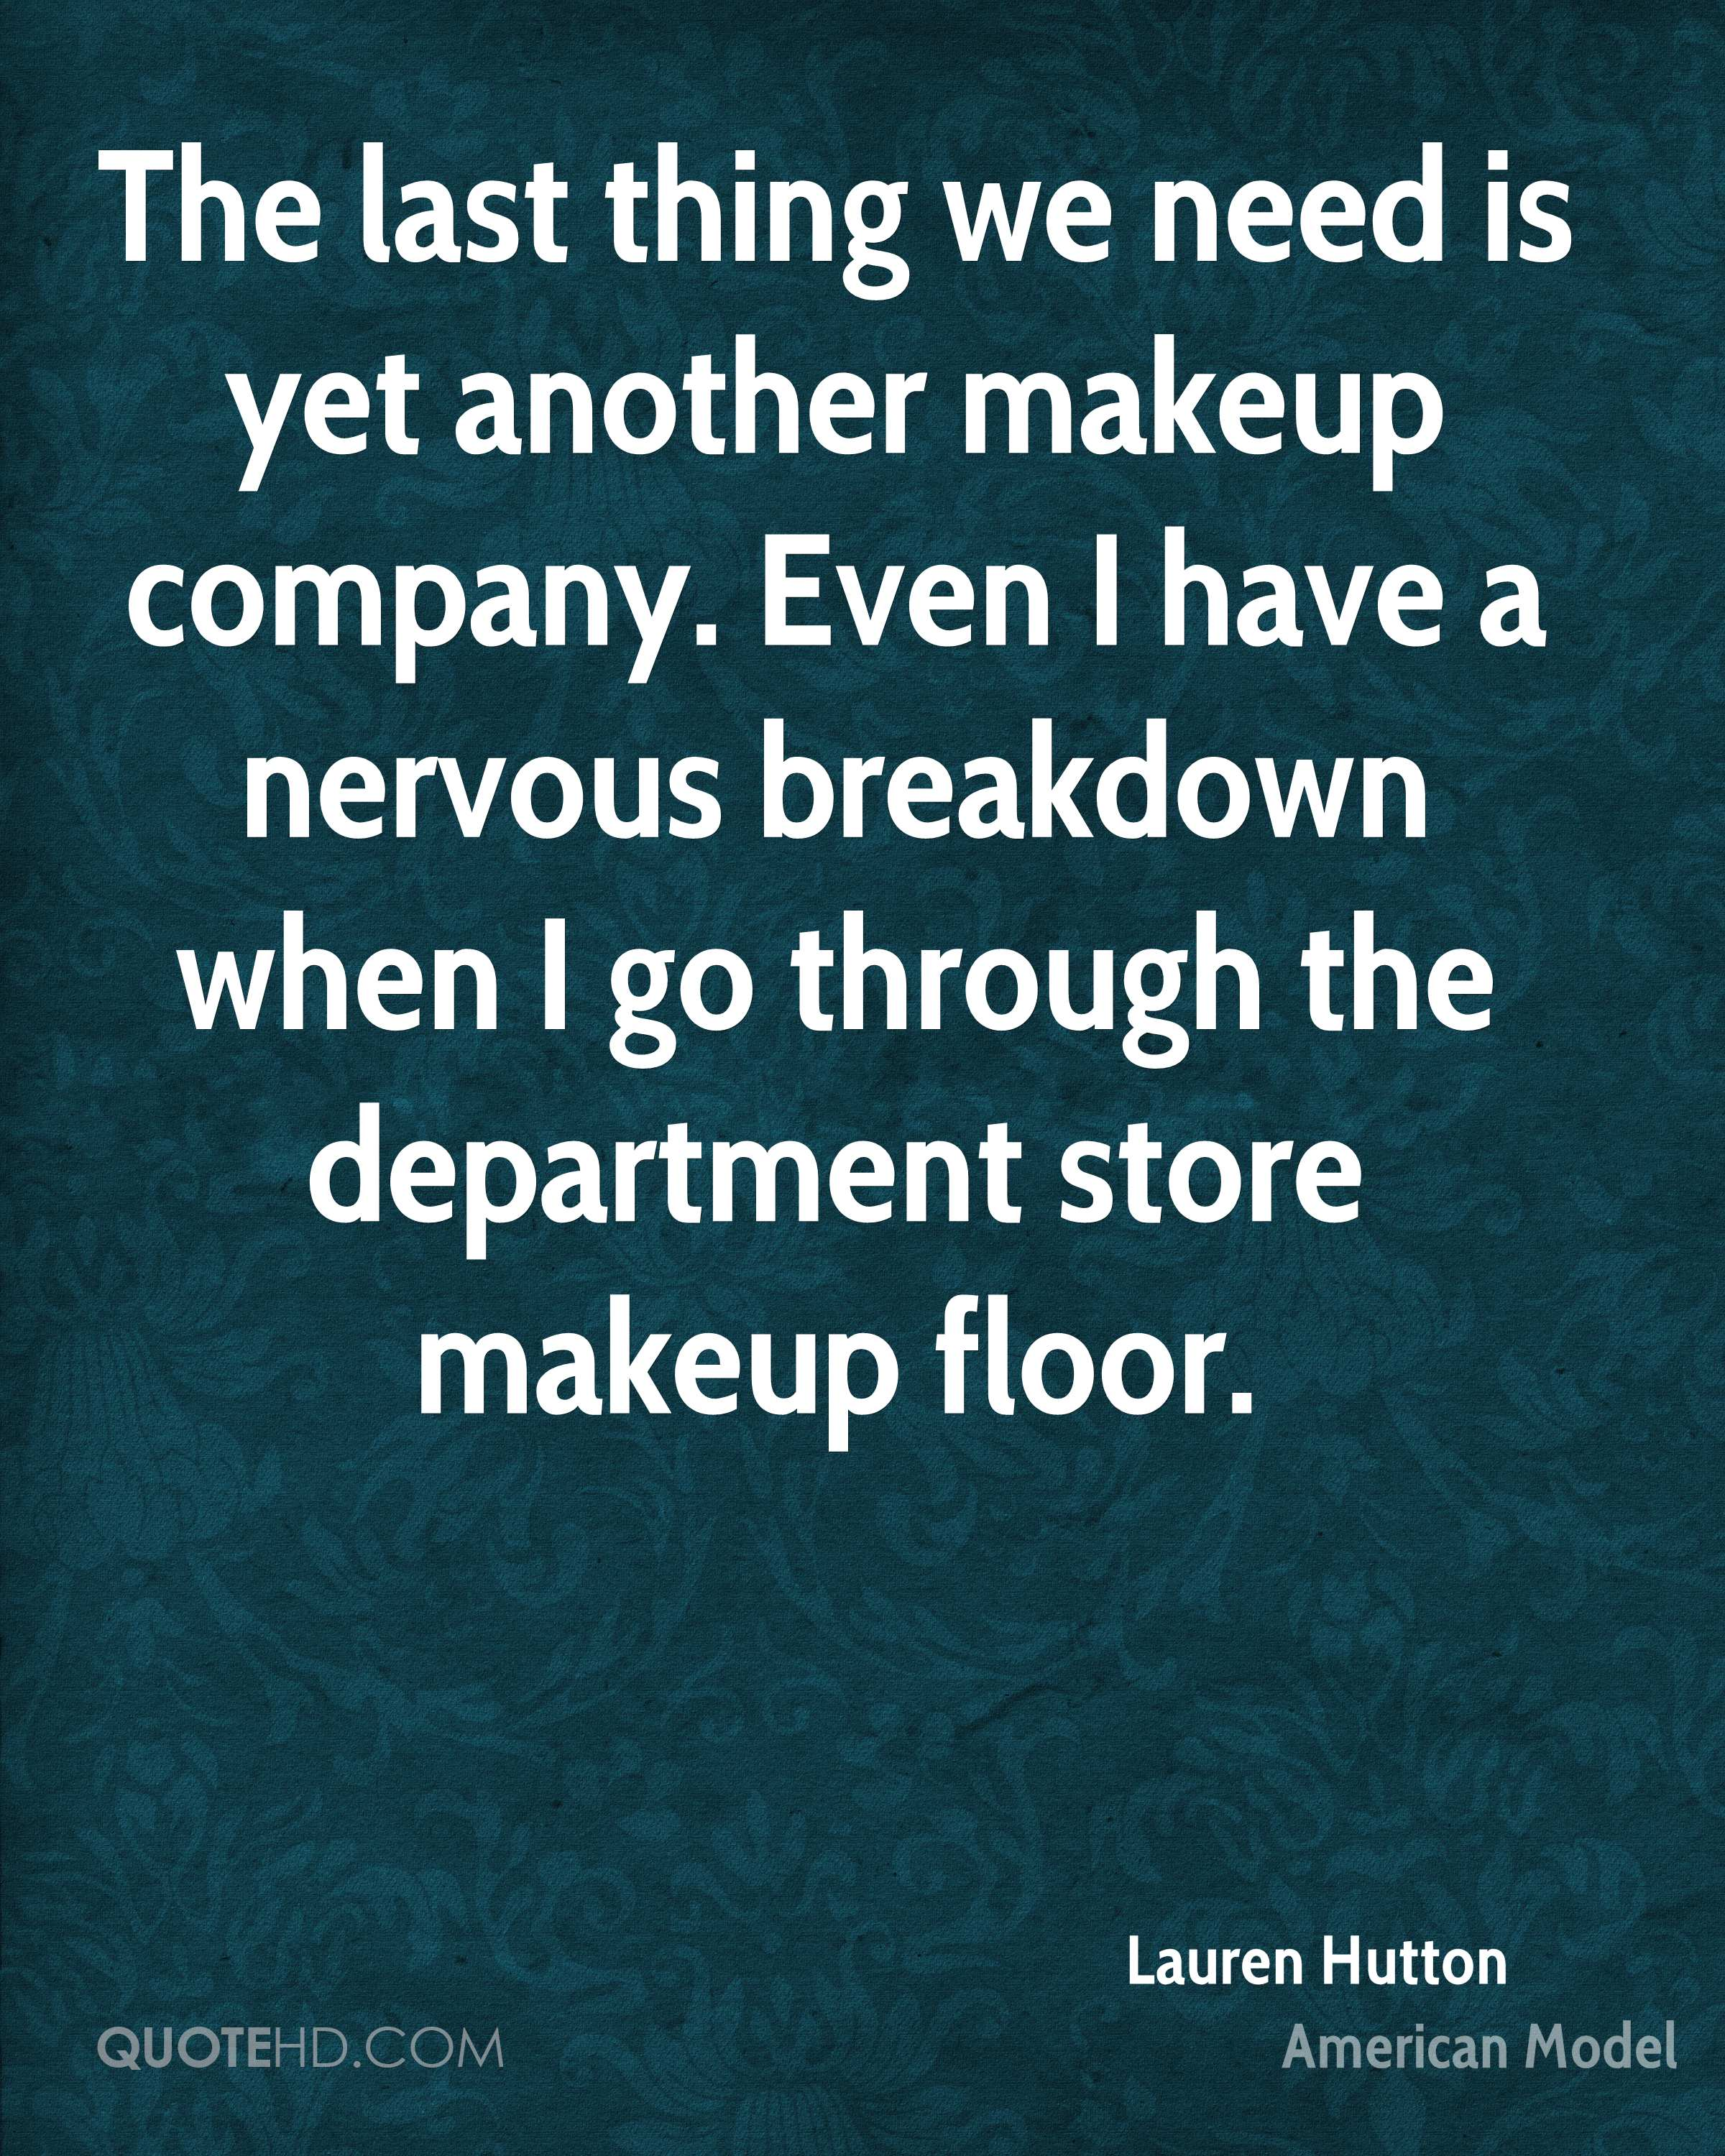 The last thing we need is yet another makeup company. Even I have a nervous breakdown when I go through the department store makeup floor.